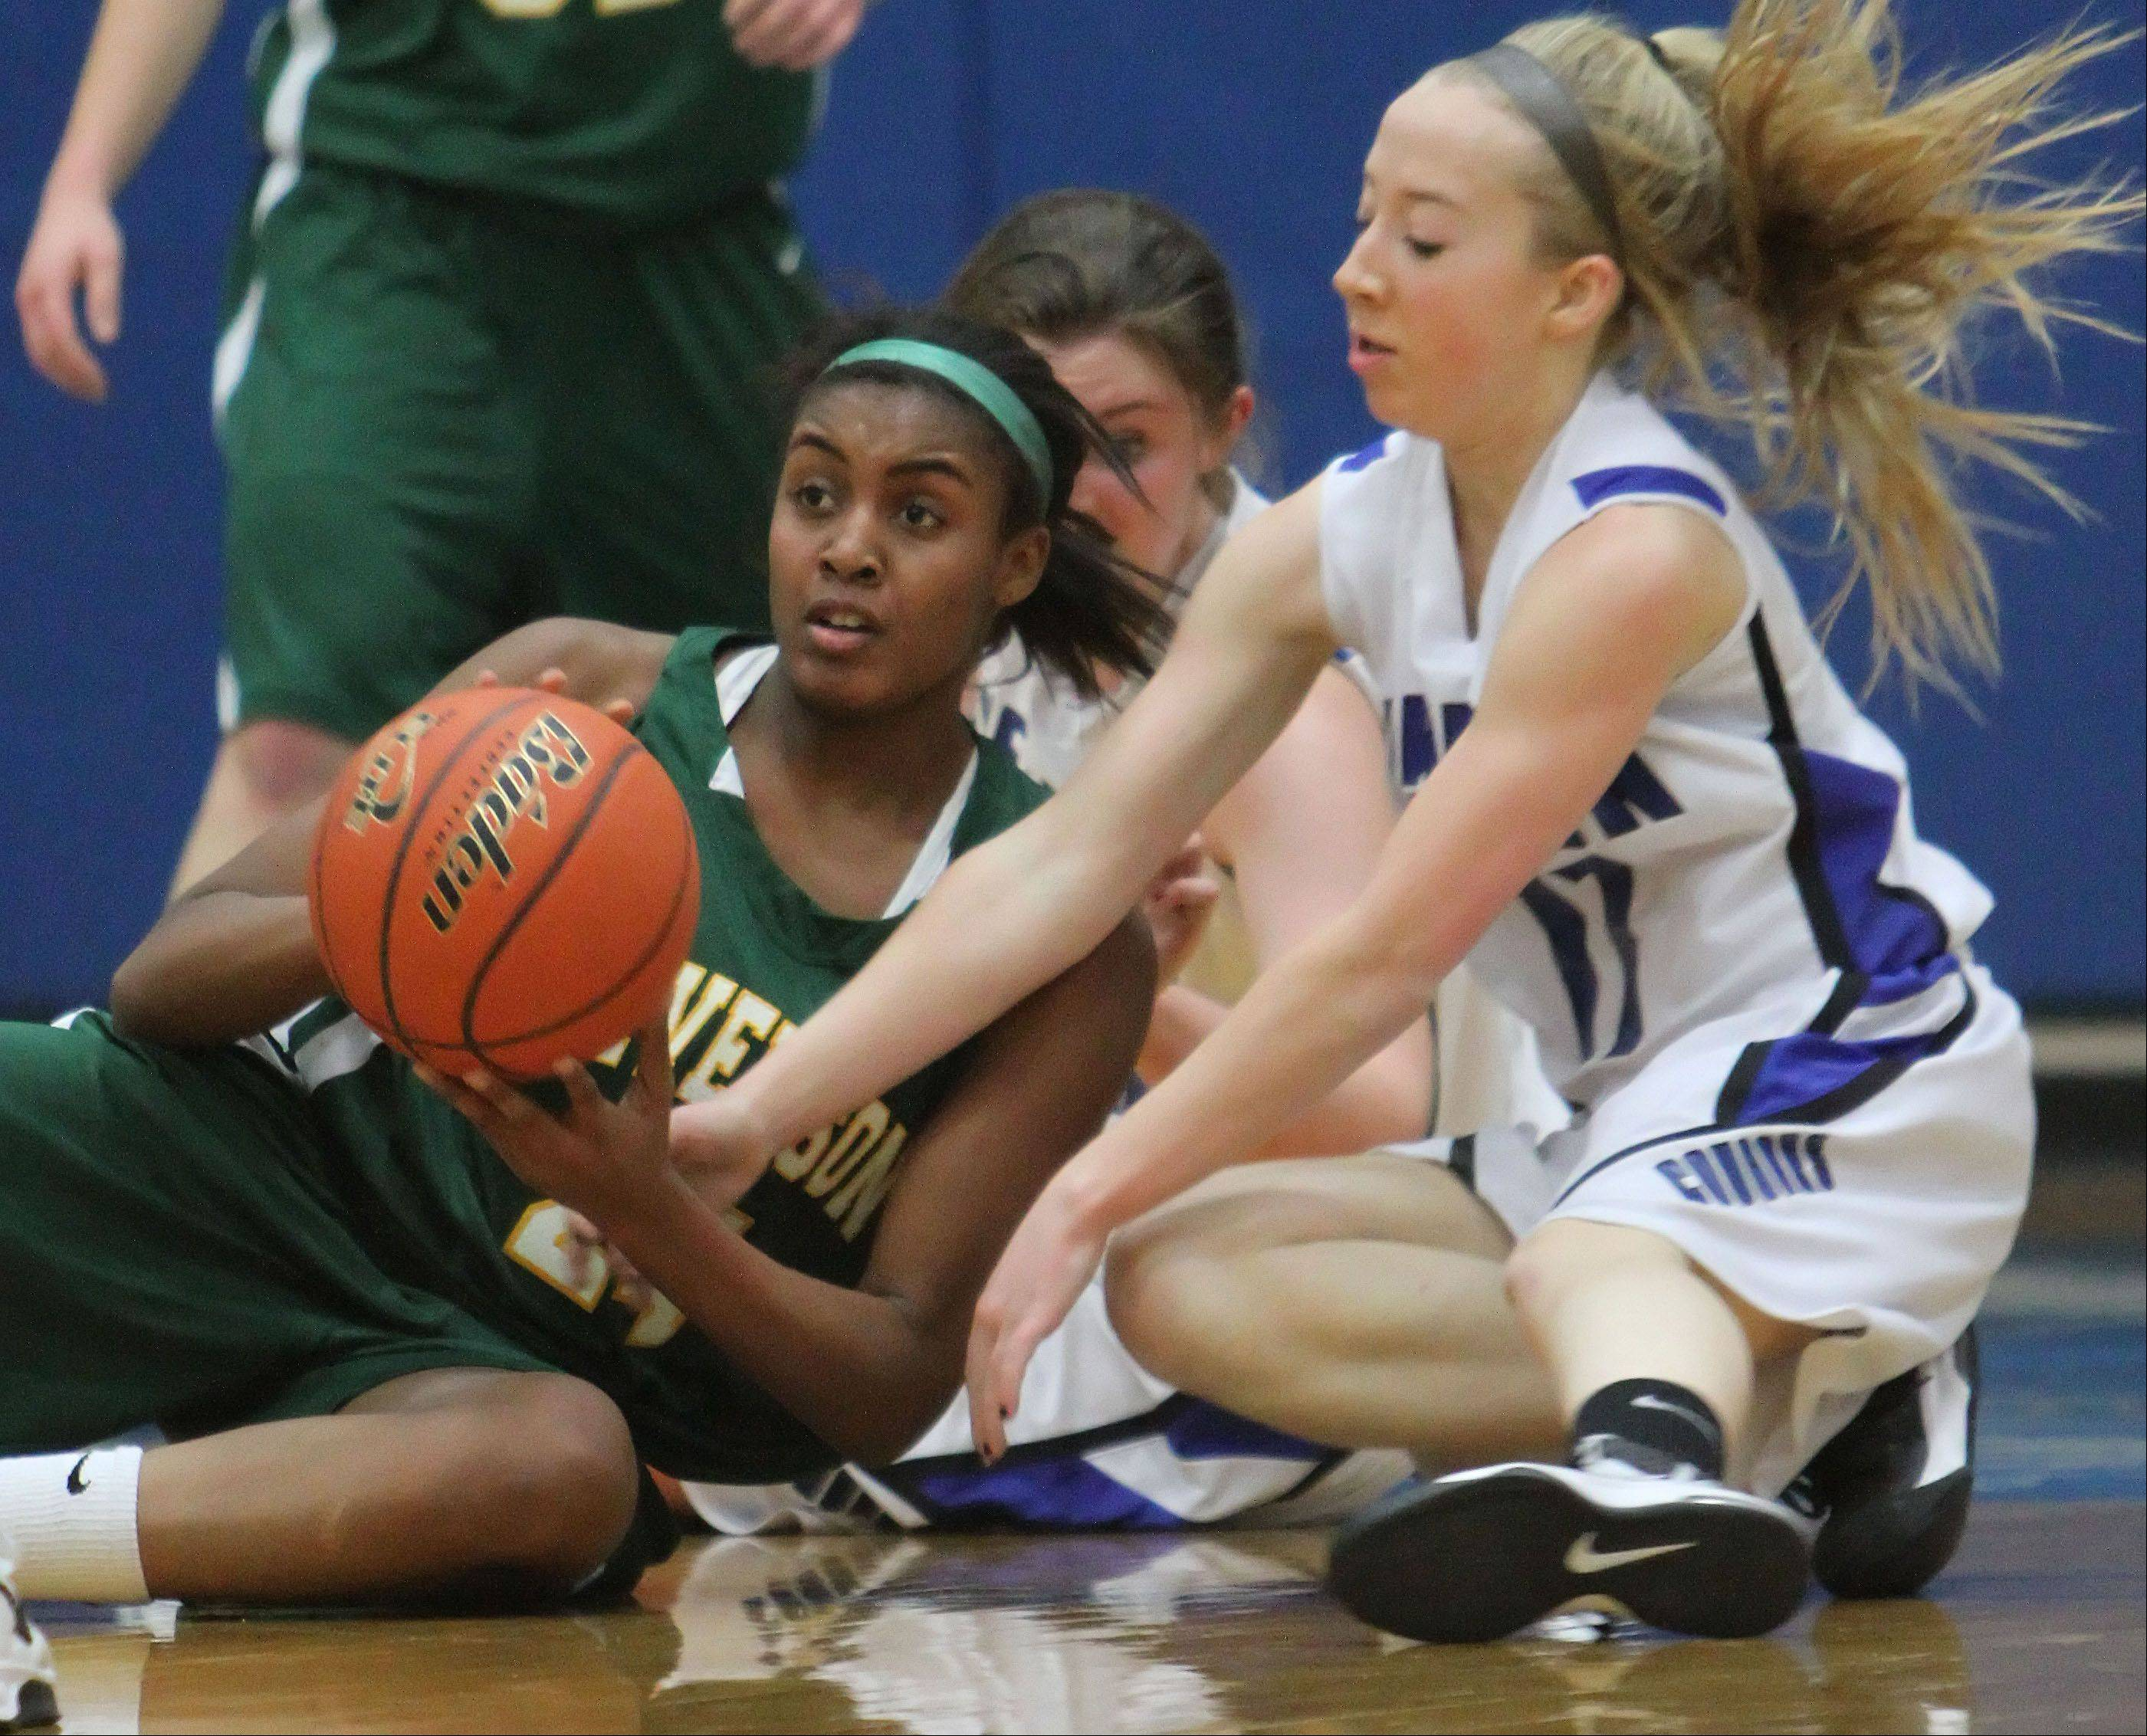 Stevenson's Taylor Buford, left, and Vernon Hills' Haley Lieberman scramble on the floor for a loose ball Tuesday night at Vernon Hills.